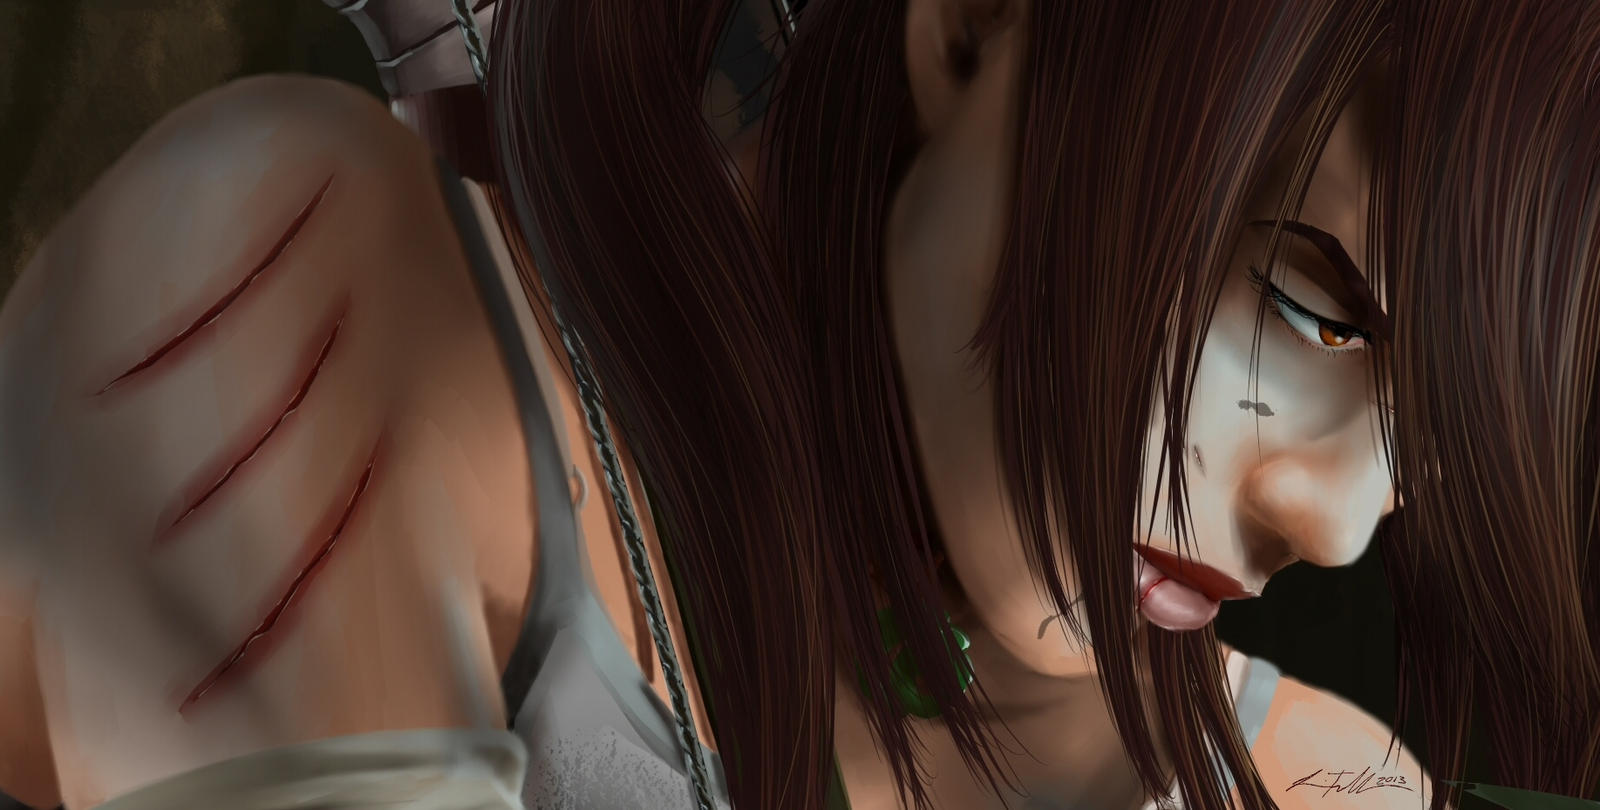 Lara close up by Bostonology